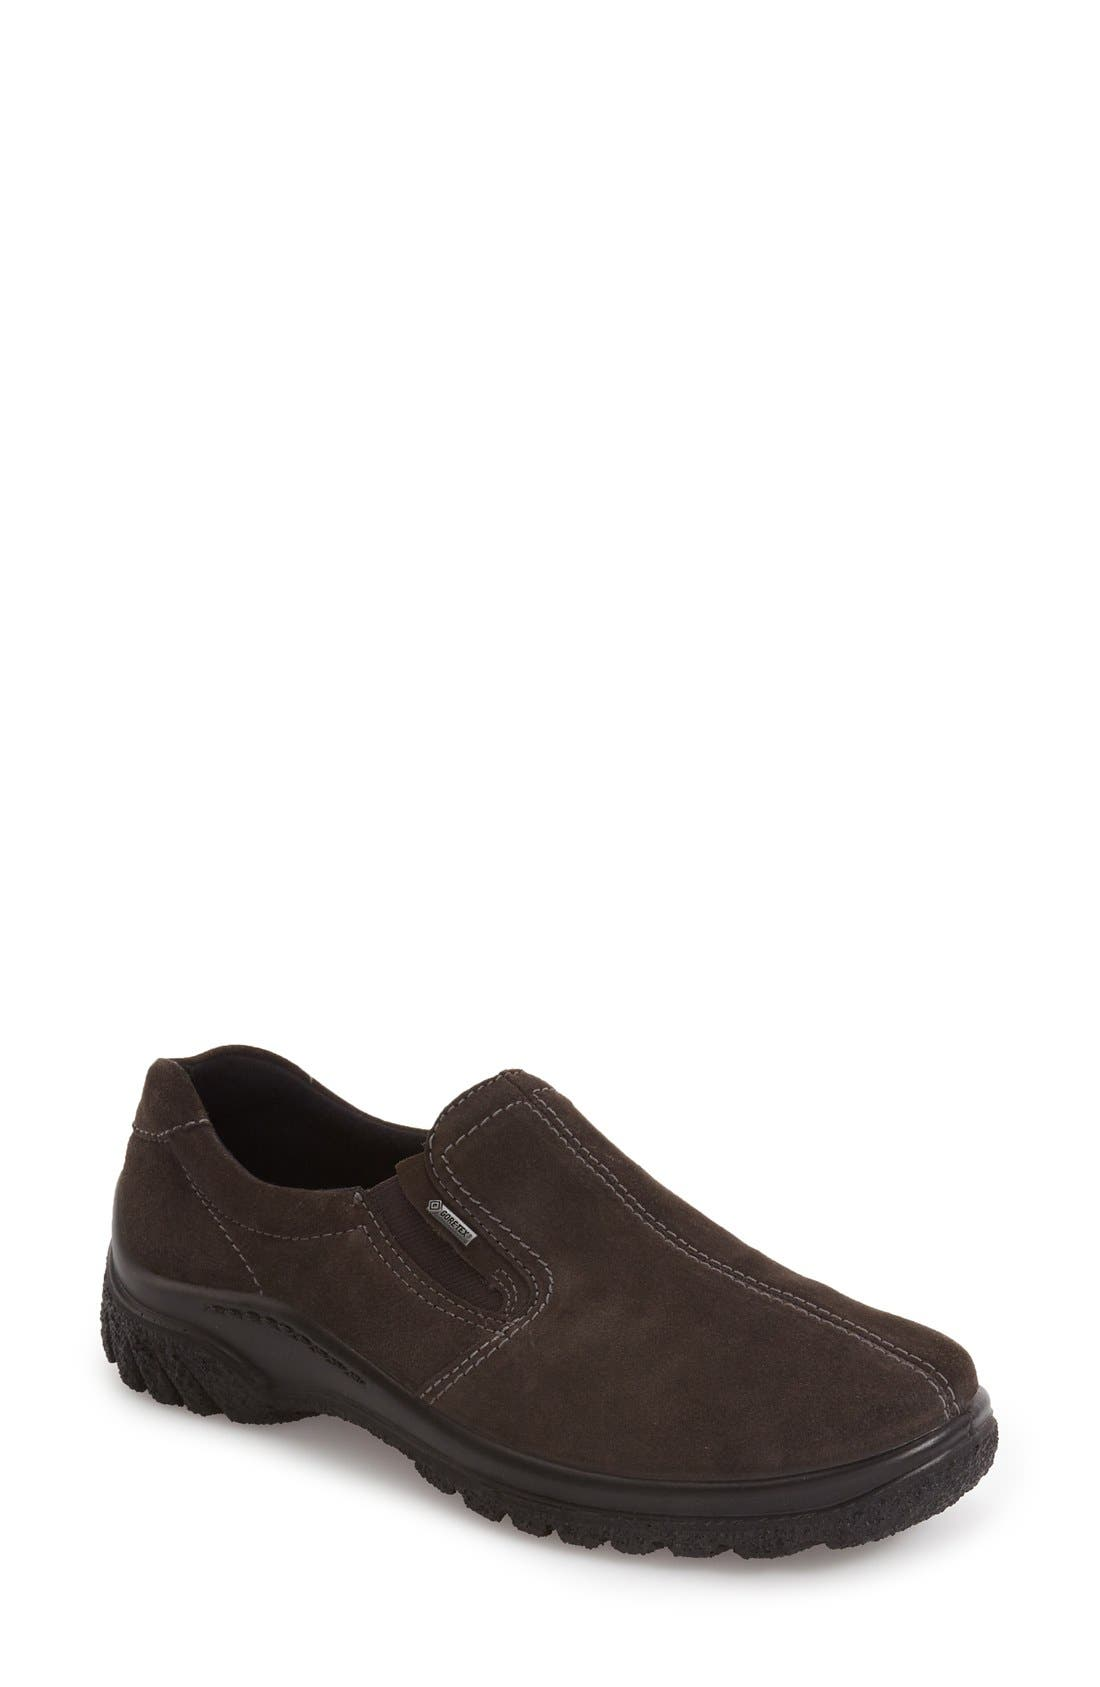 Parson Waterproof Gore-Tex<sup>®</sup> Slip-On Sneaker,                             Main thumbnail 1, color,                             LAVA SUEDE